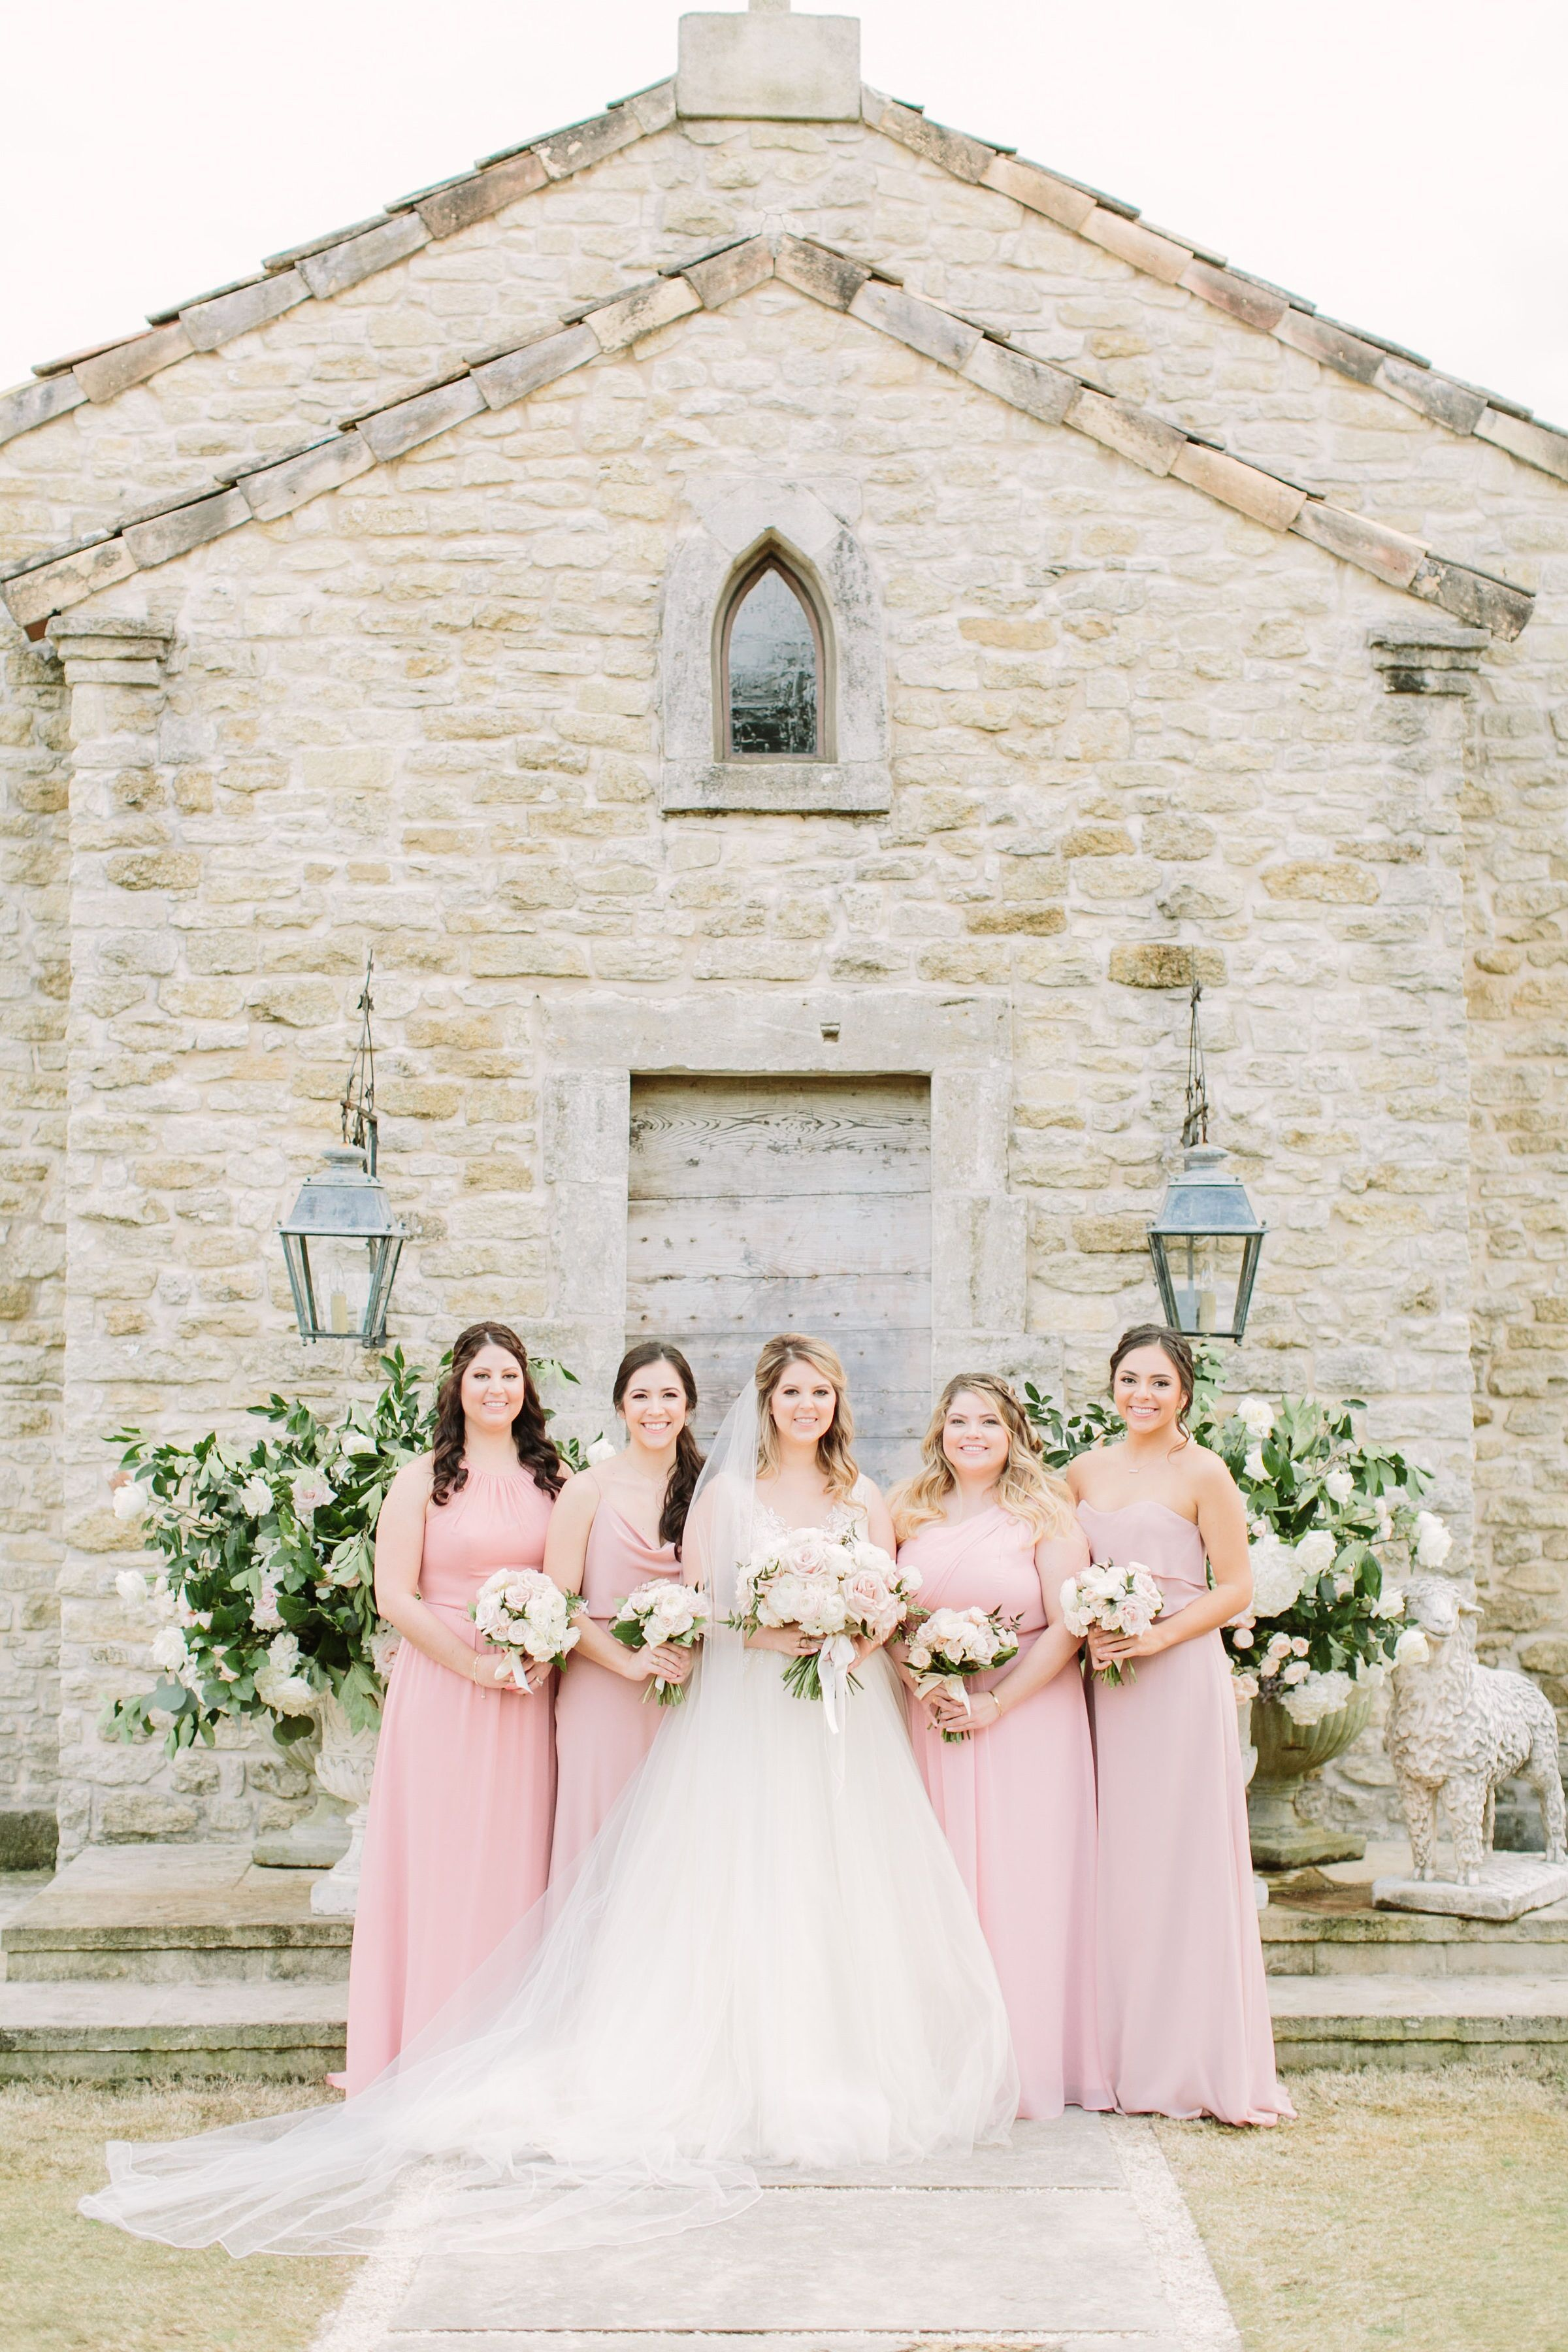 Dusty Pink Bridesmaid Dresses For Southern Garden Party Wedding At Houston Oaks Country Club In Tex Texas Wedding Planner Dusty Pink Bridesmaid Dresses Wedding